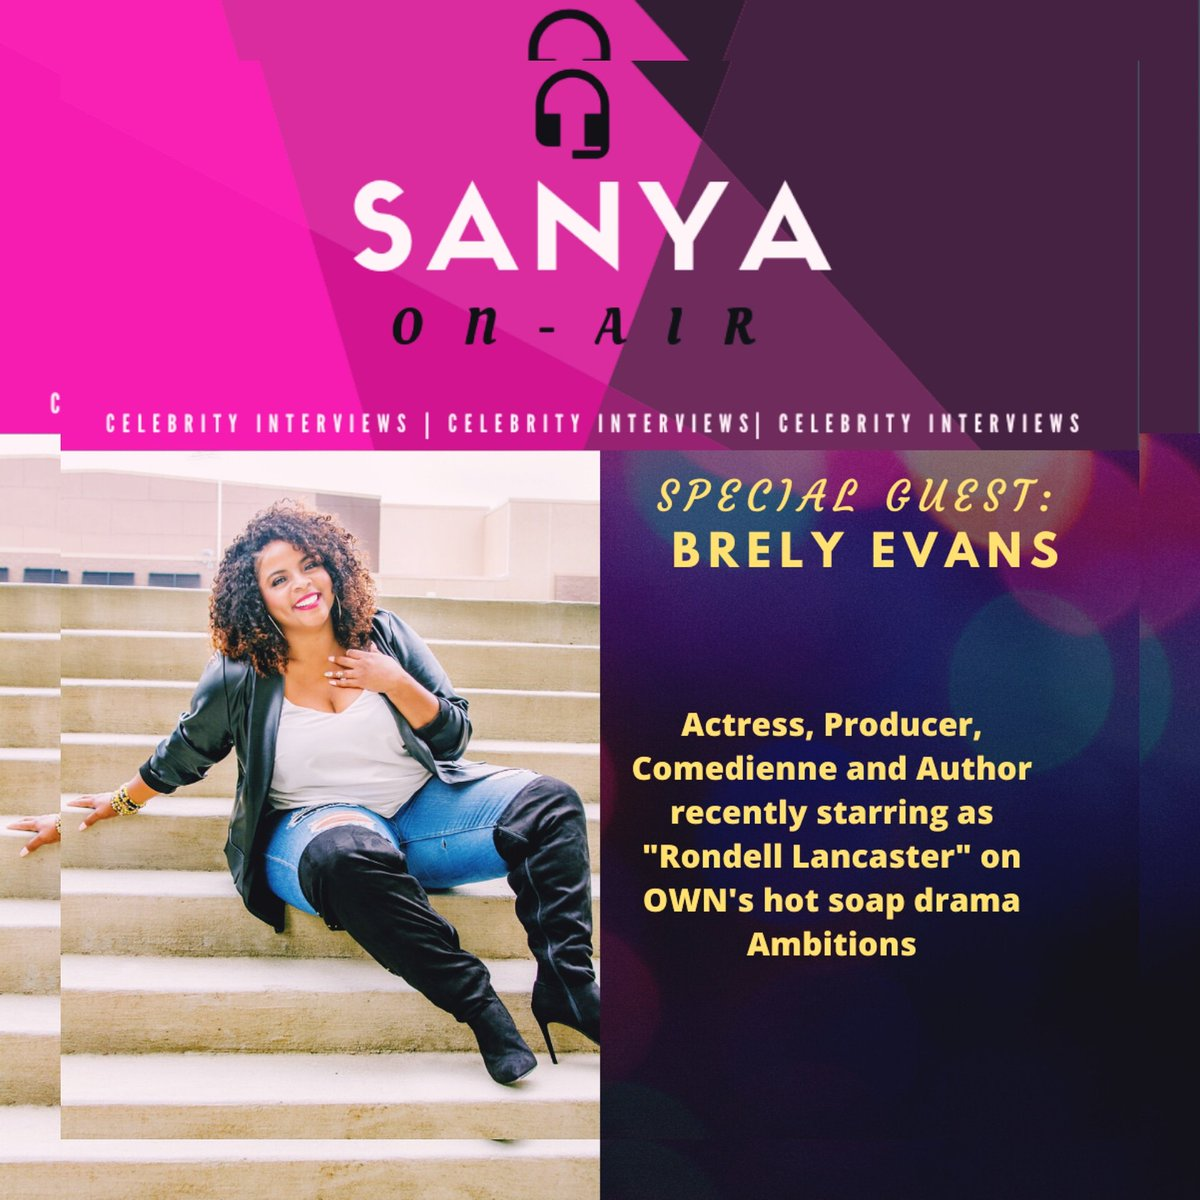 Media-ing Actress @BrelyEvans wraps up another season as #RondellLancaster on #OWN hot drama #Ambitions and joins me to talk about it And of course...I'll have the full interview available next week #sanyaonair #podcast #podcasthost #celebrityinterviews #mediapic.twitter.com/Ml0yLBNc74